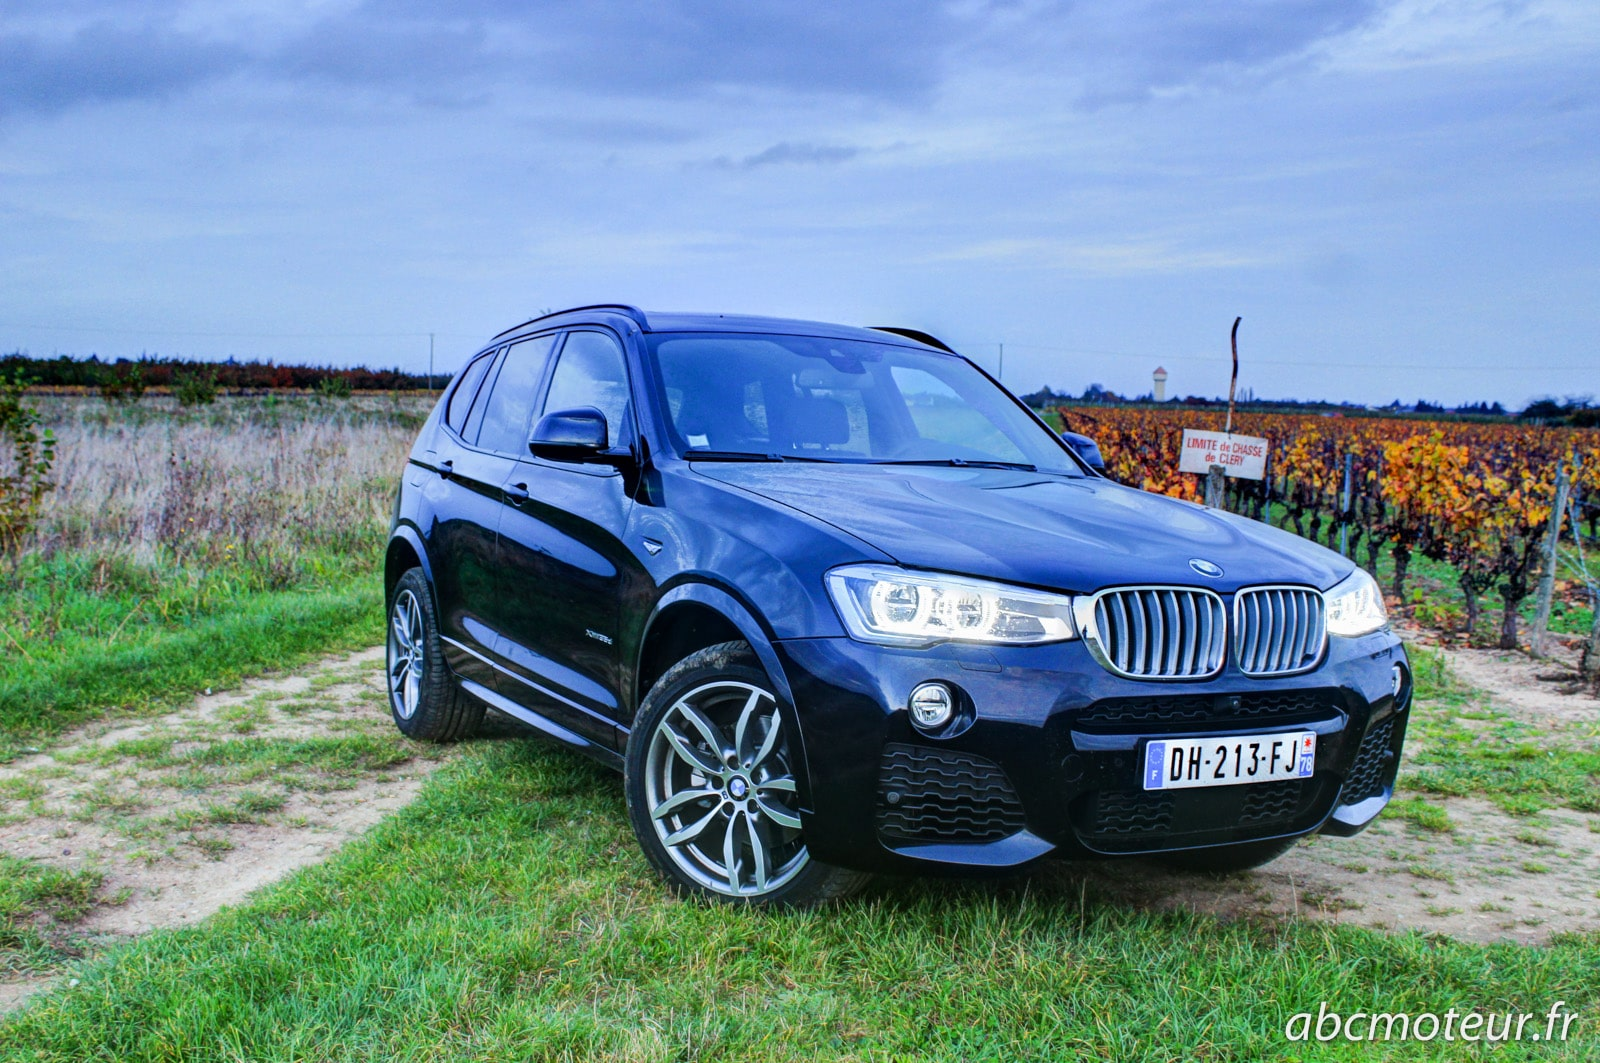 essai bmw x3 xdrive 35d 313 ch restyl un suv dynamique. Black Bedroom Furniture Sets. Home Design Ideas